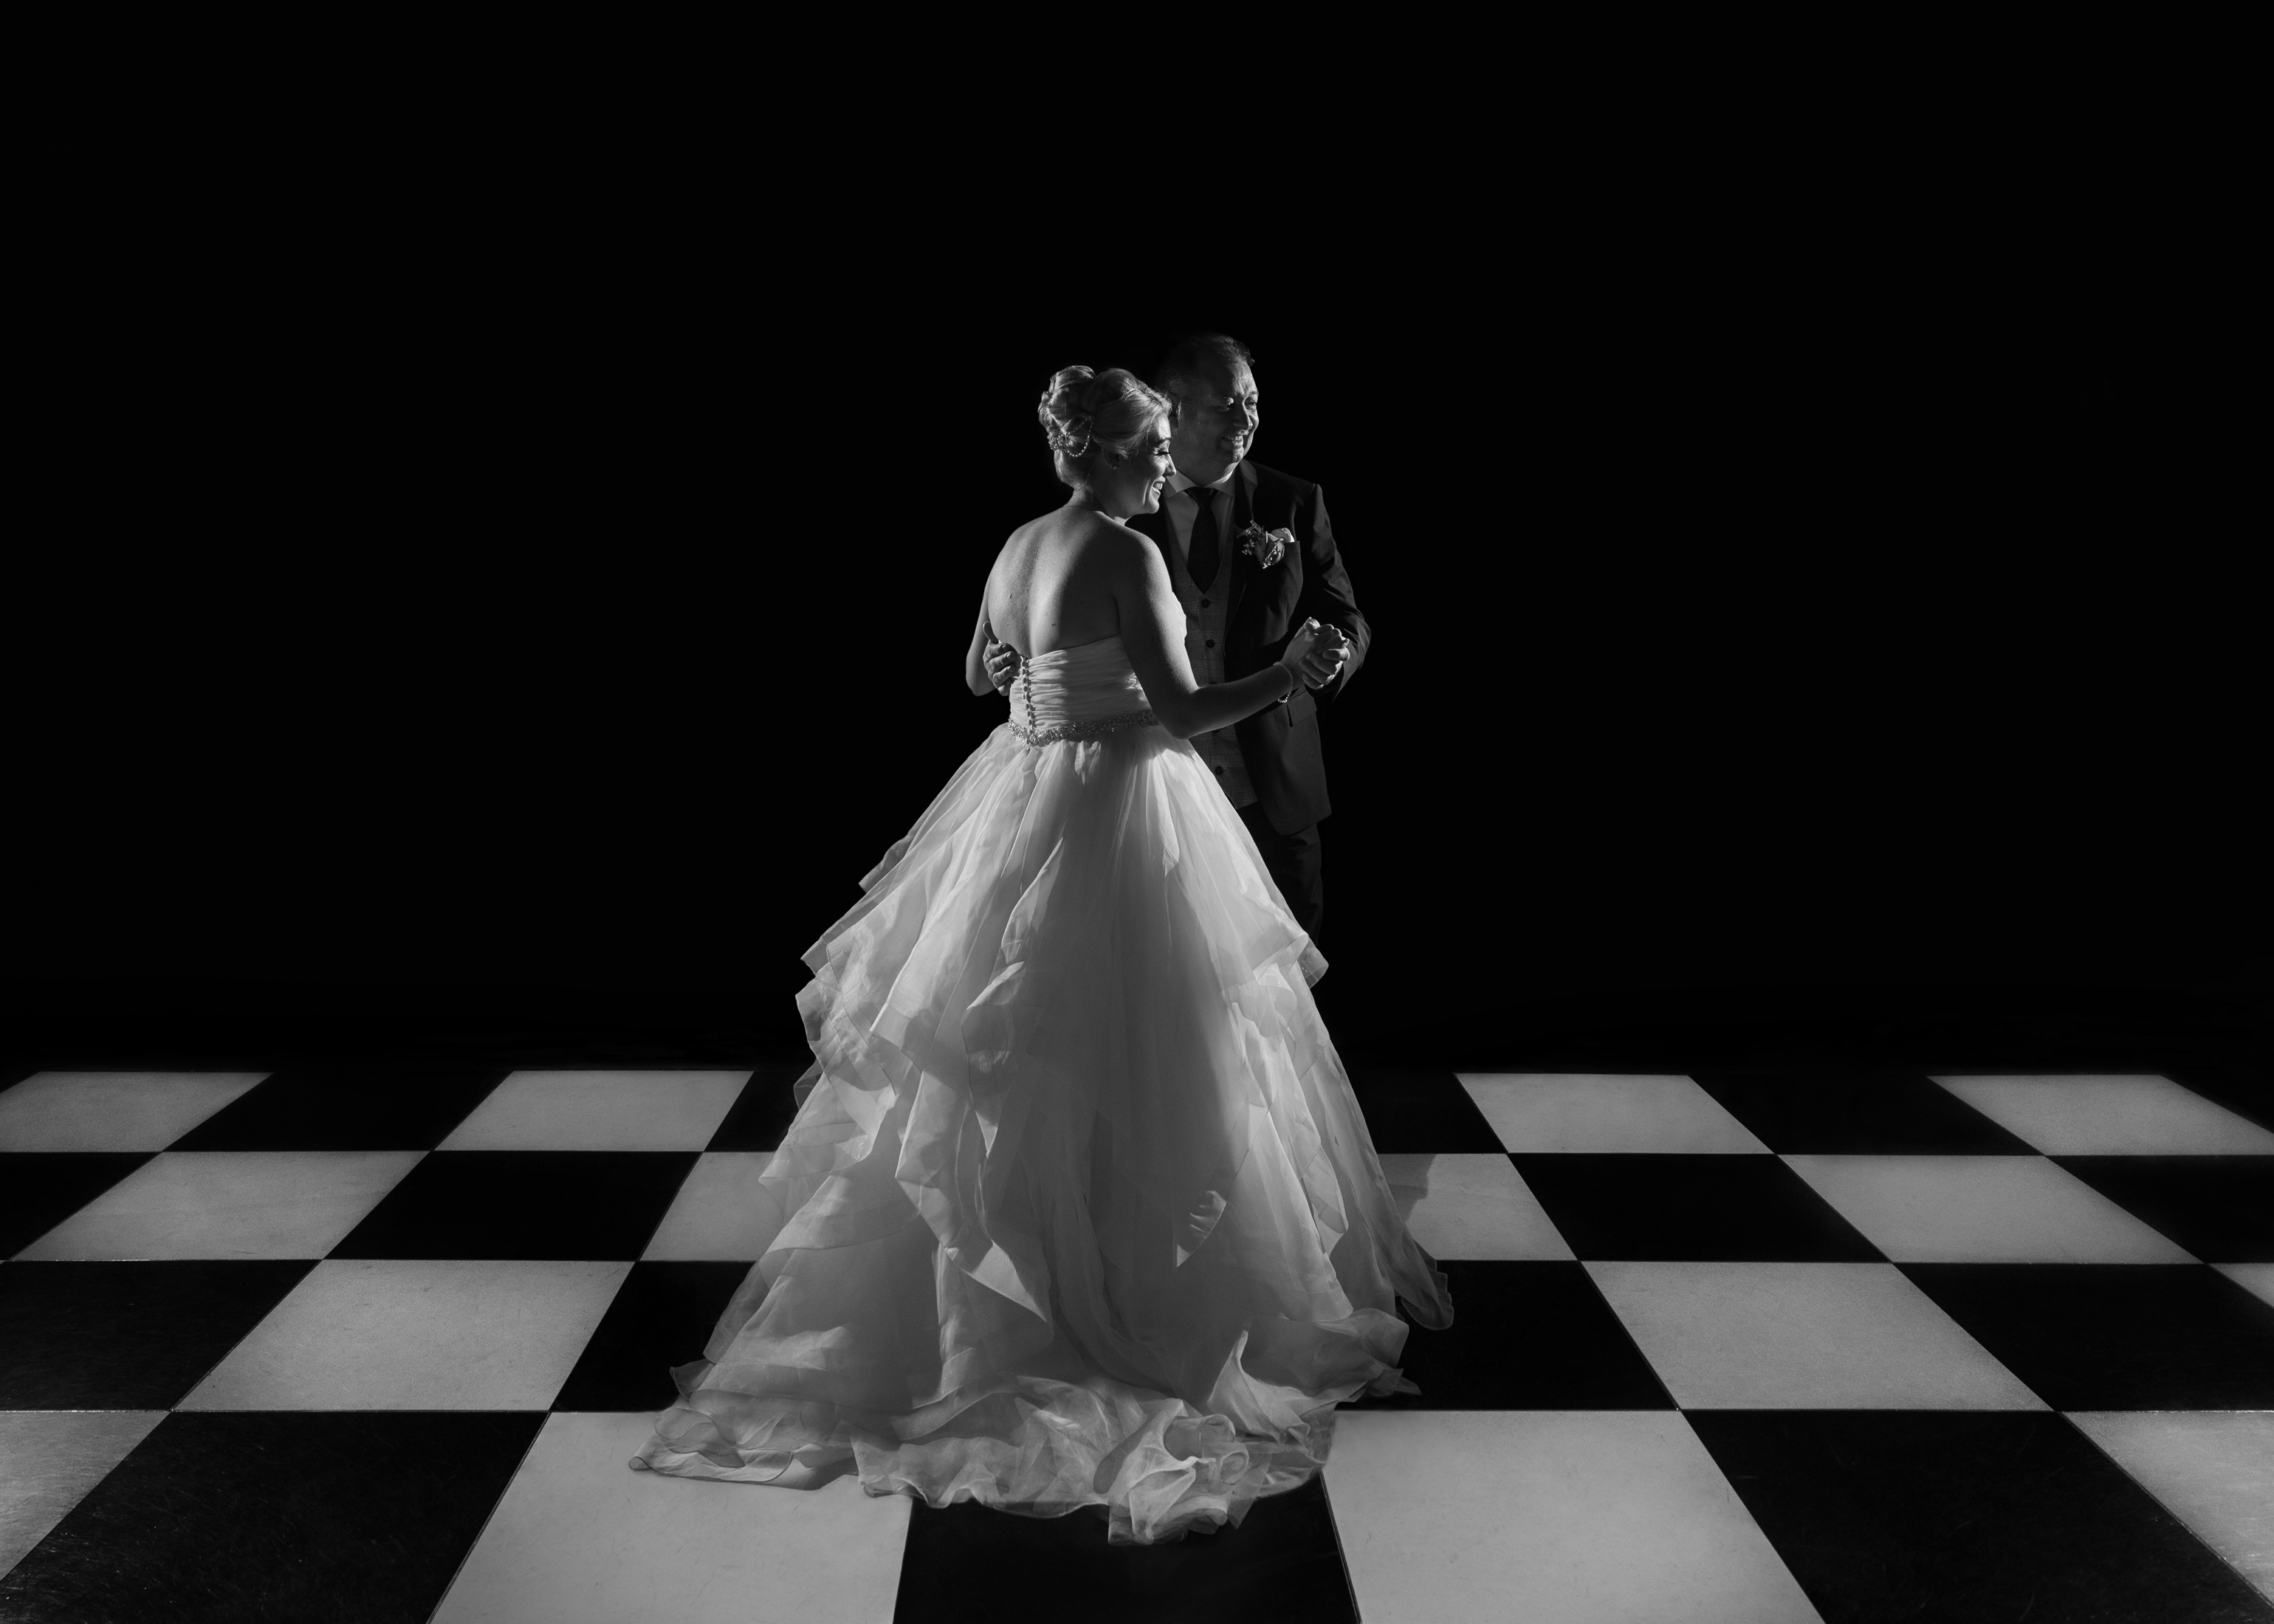 bride and groom first dance on checkered dance floor- photo by John Gillooley, ireland